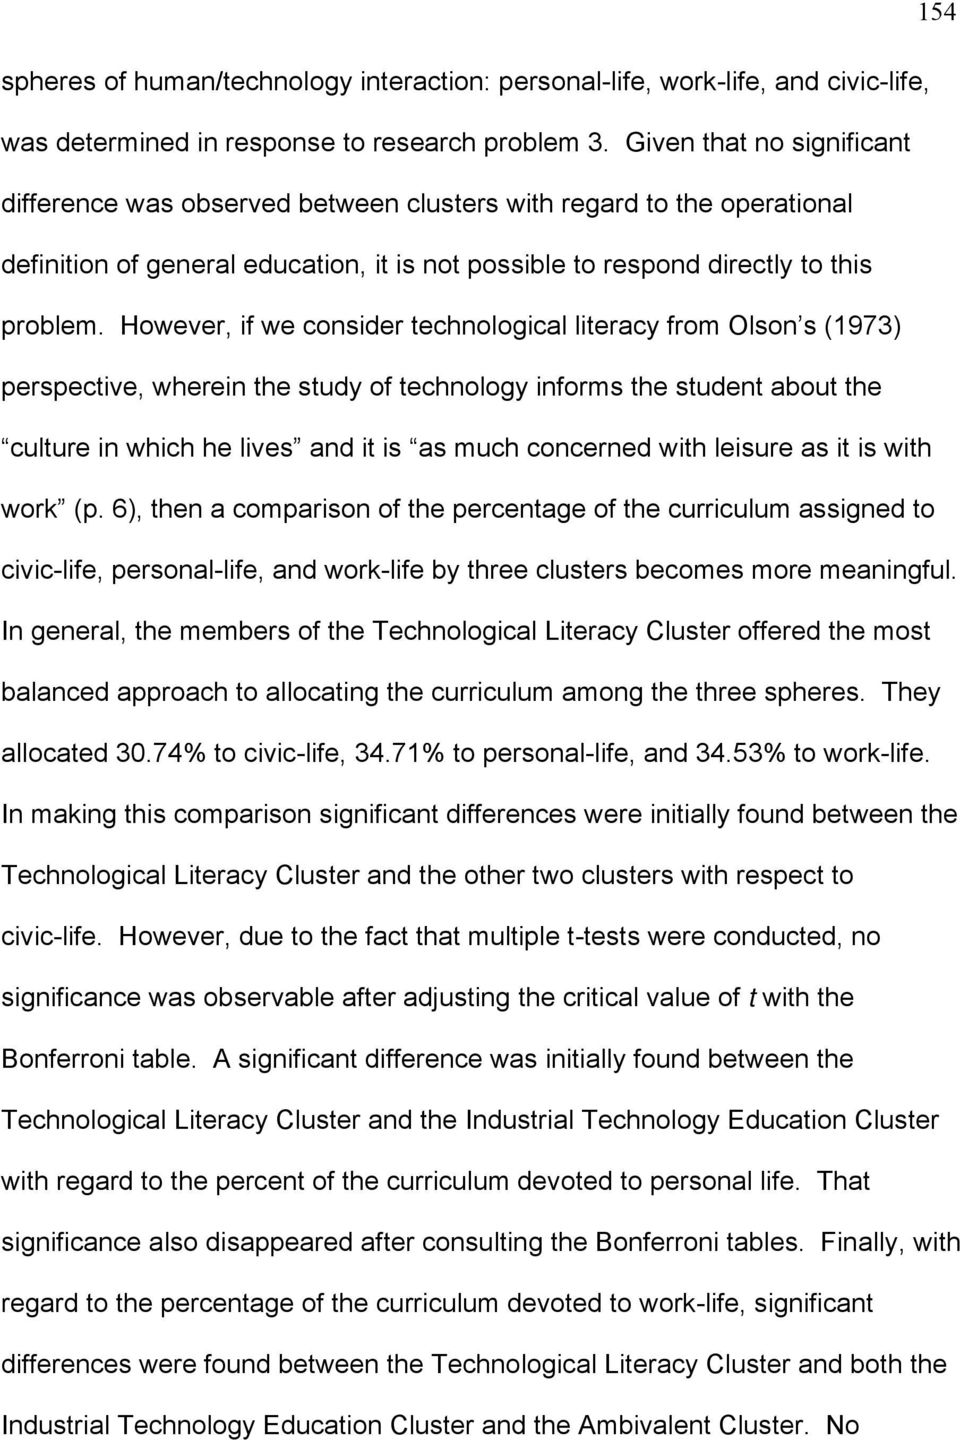 However, if we consider technological literacy from Olson s (1973) perspective, wherein the study of technology informs the student about the culture in which he lives and it is as much concerned